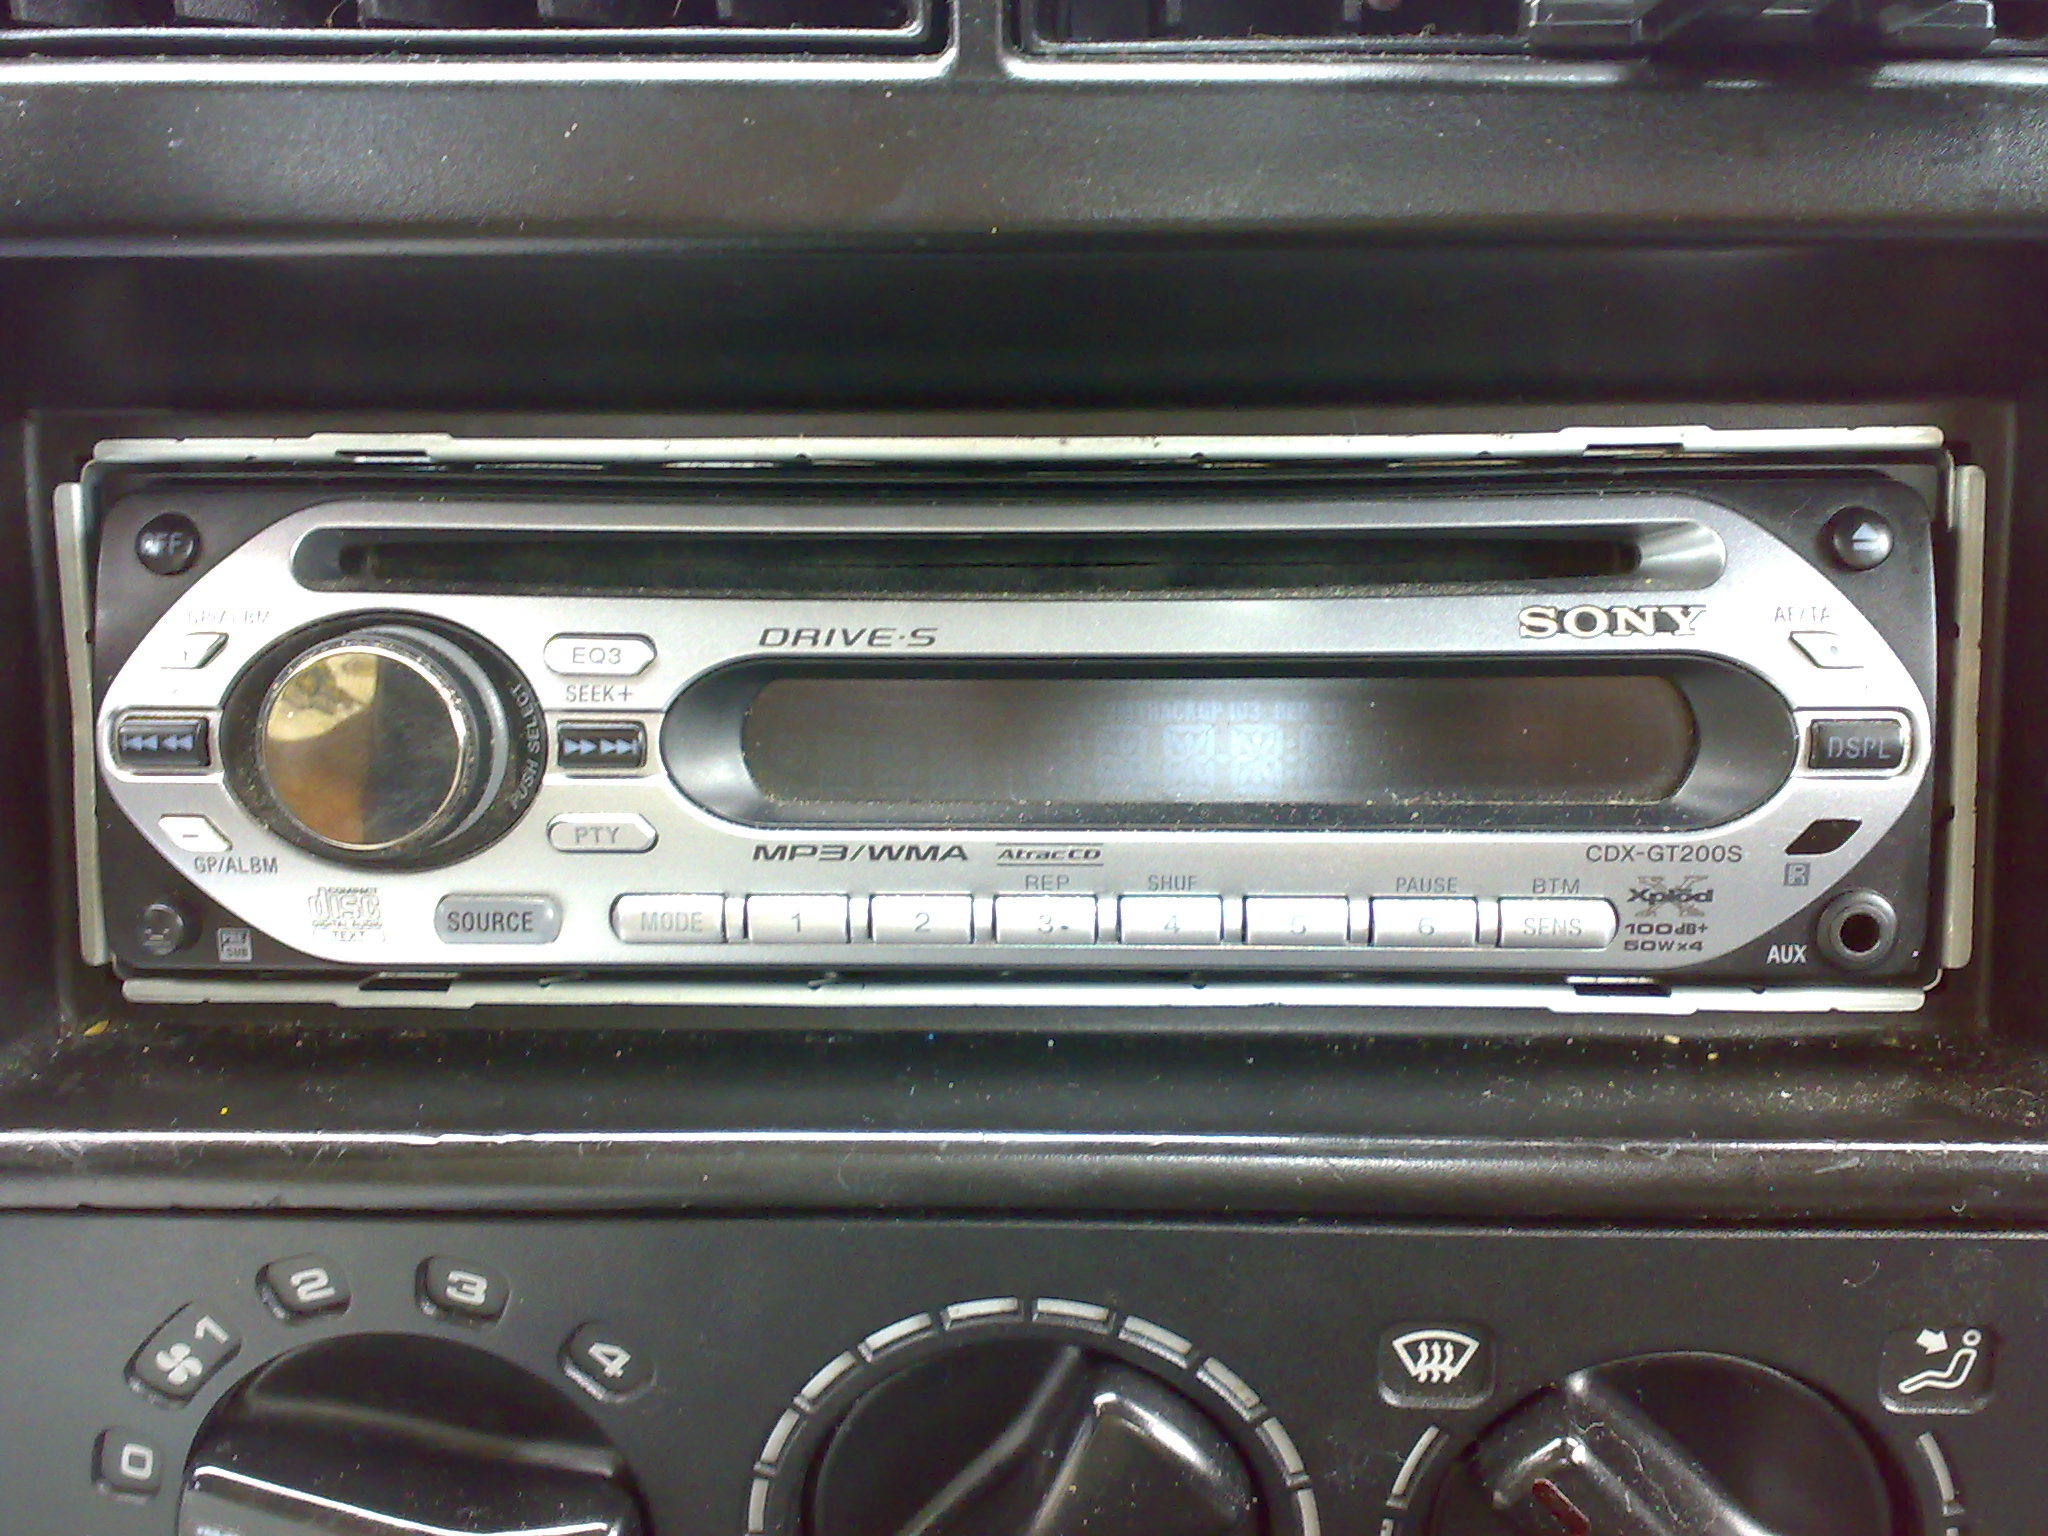 Luxury Sony Cdx Gt200 Xplod Wires Elaboration - Electrical and ...